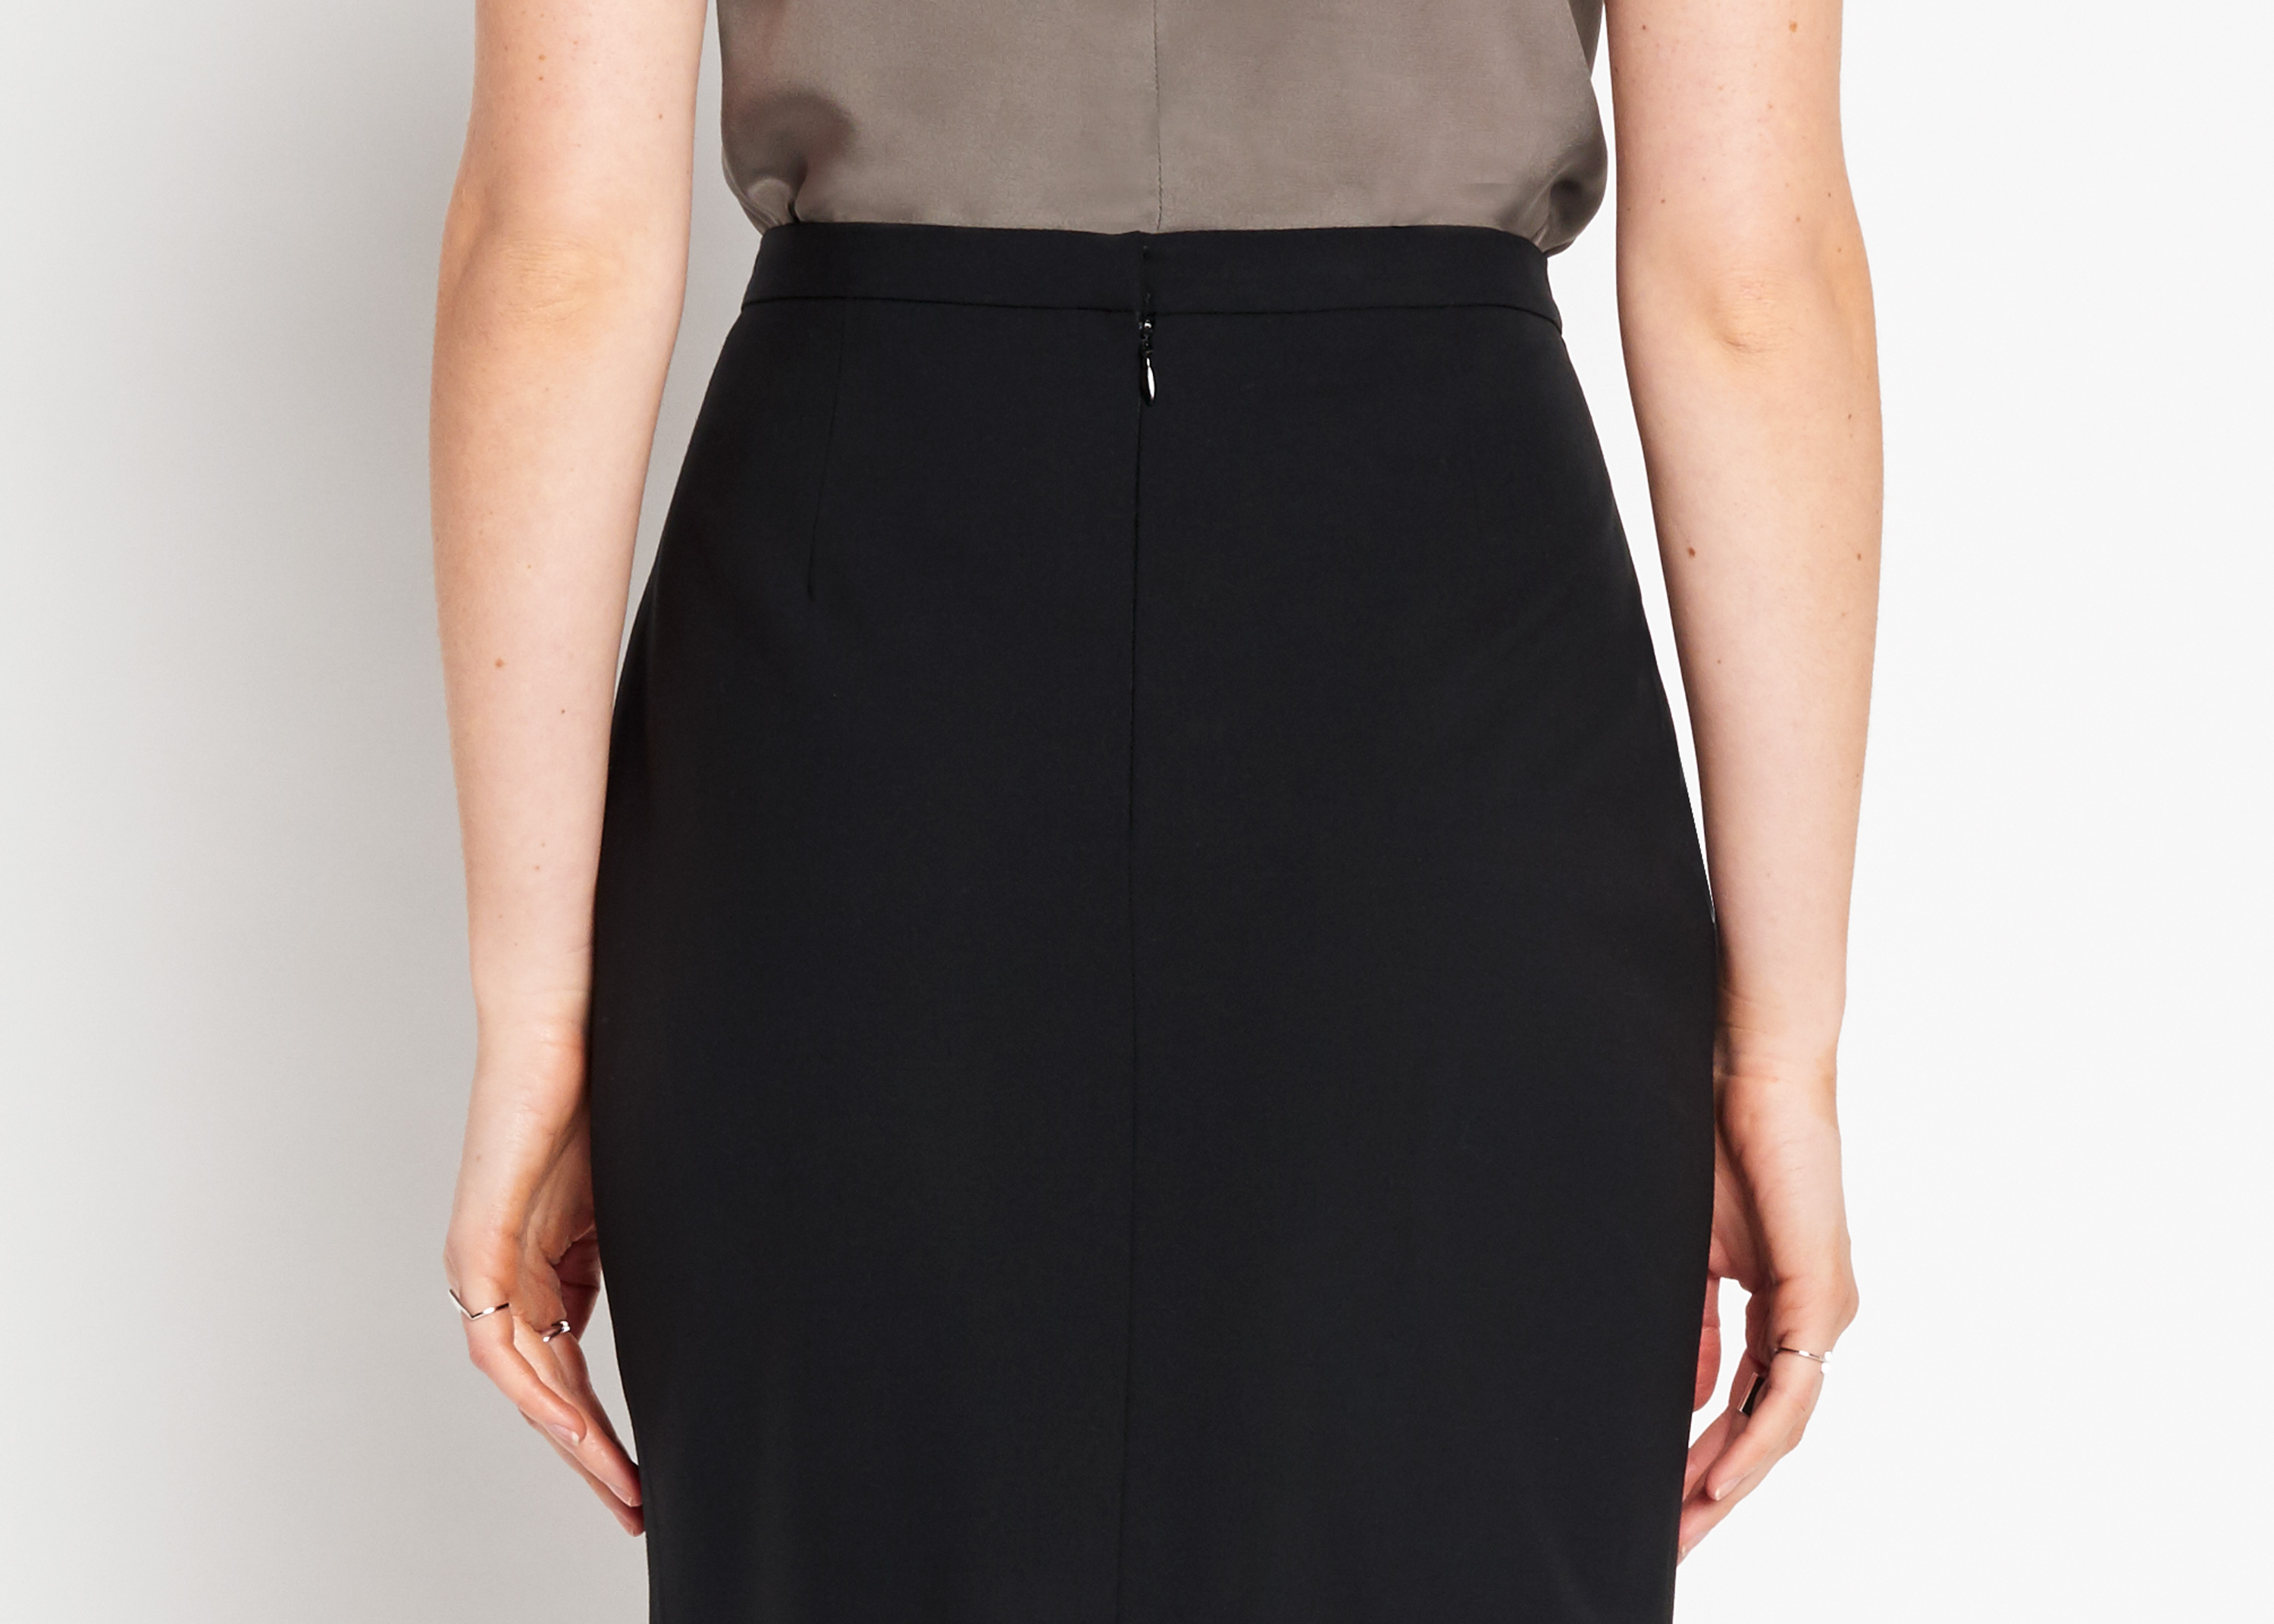 Of Mercer | Franklin Skirt | Detail Shot